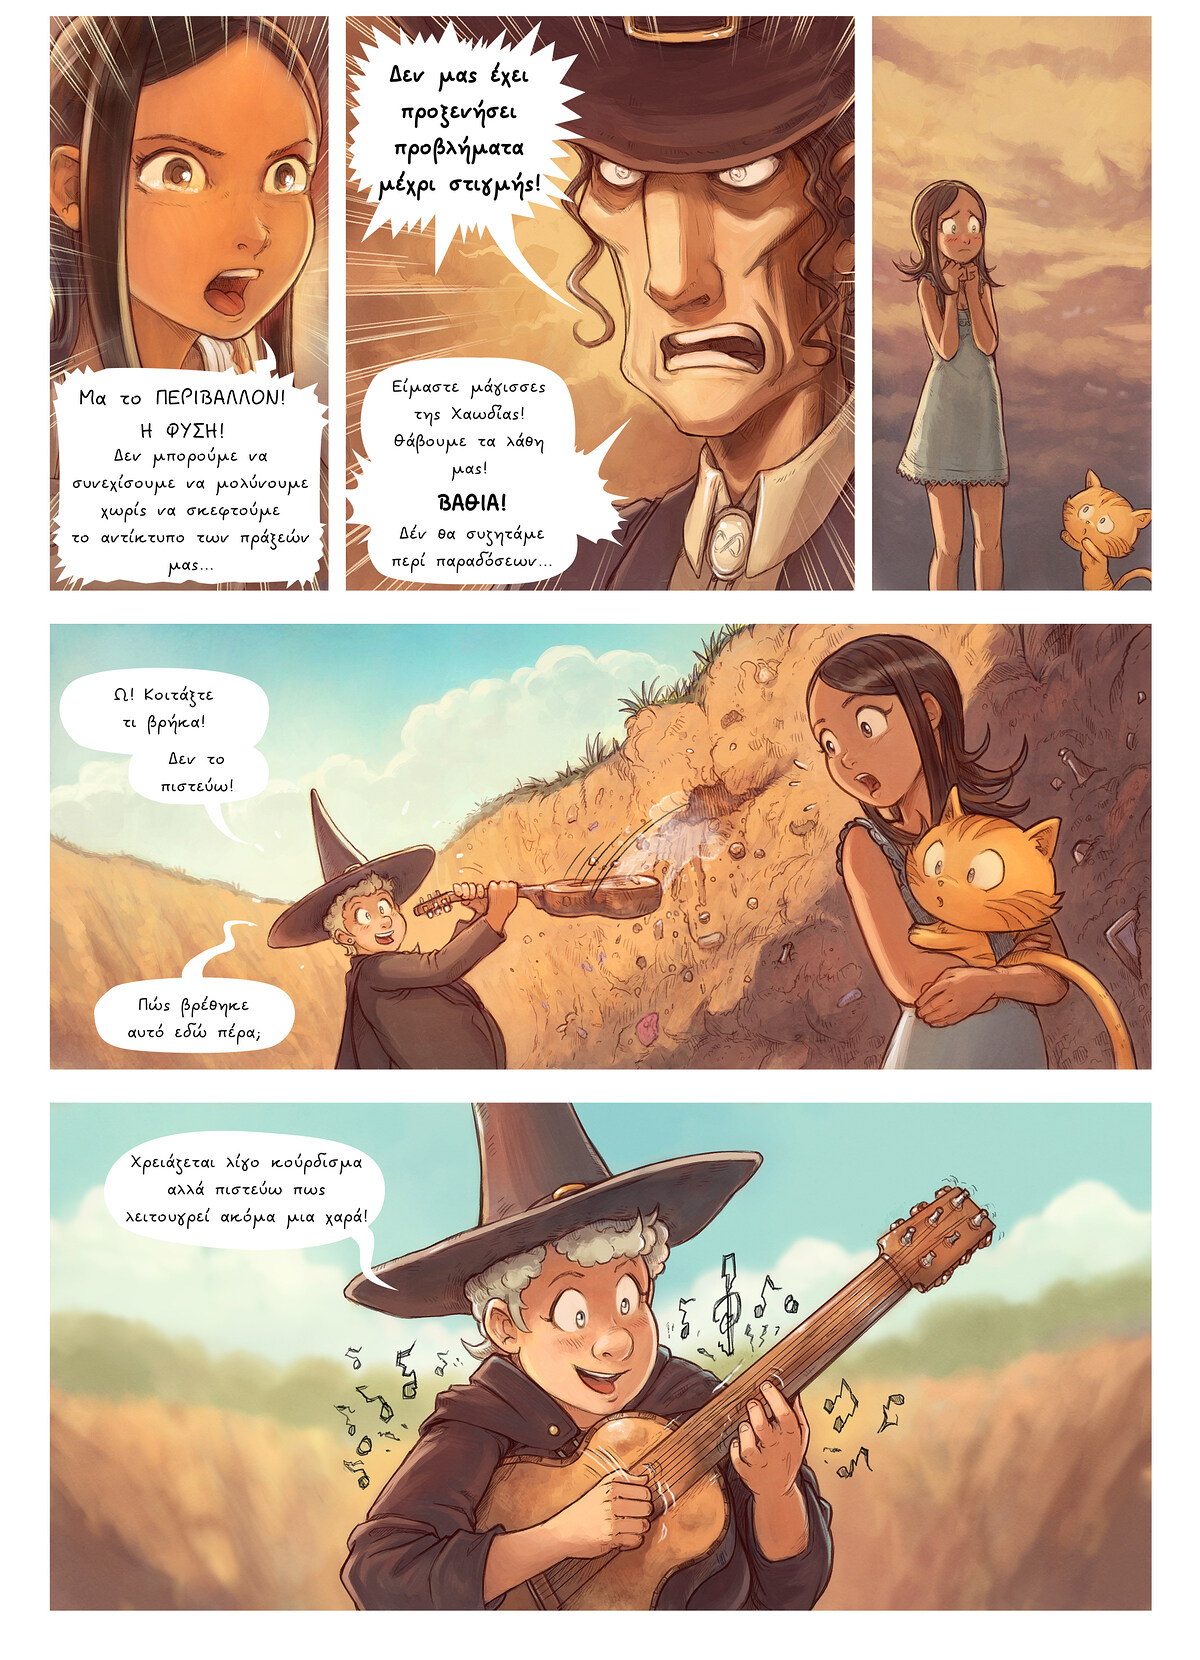 A webcomic page of Pepper&Carrot, episode 19 [el], page 6